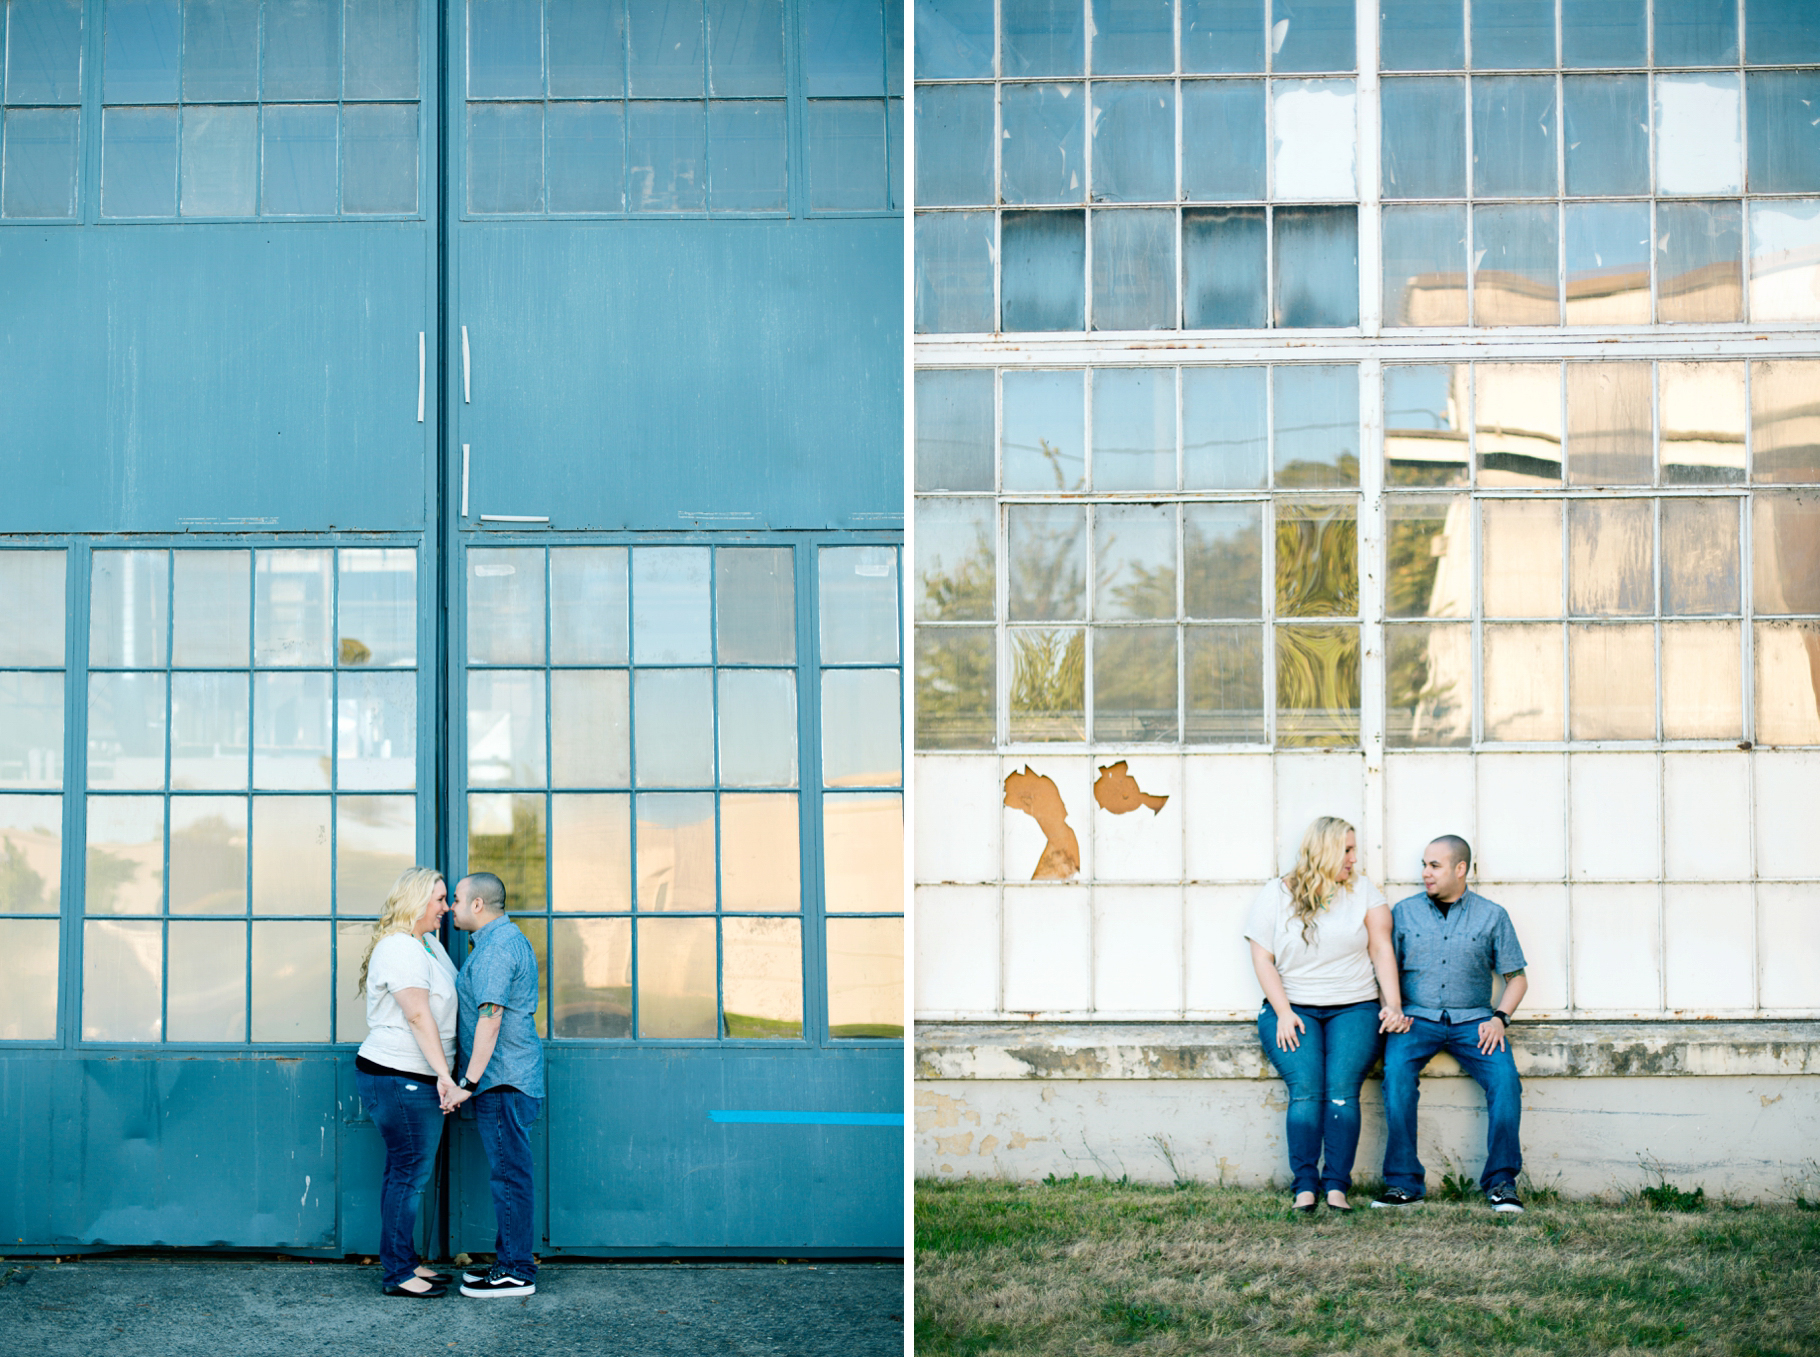 69-2015-Photographer-Year-in-Review-Seattle-Wedding-Photography-by-Betty-Elaine